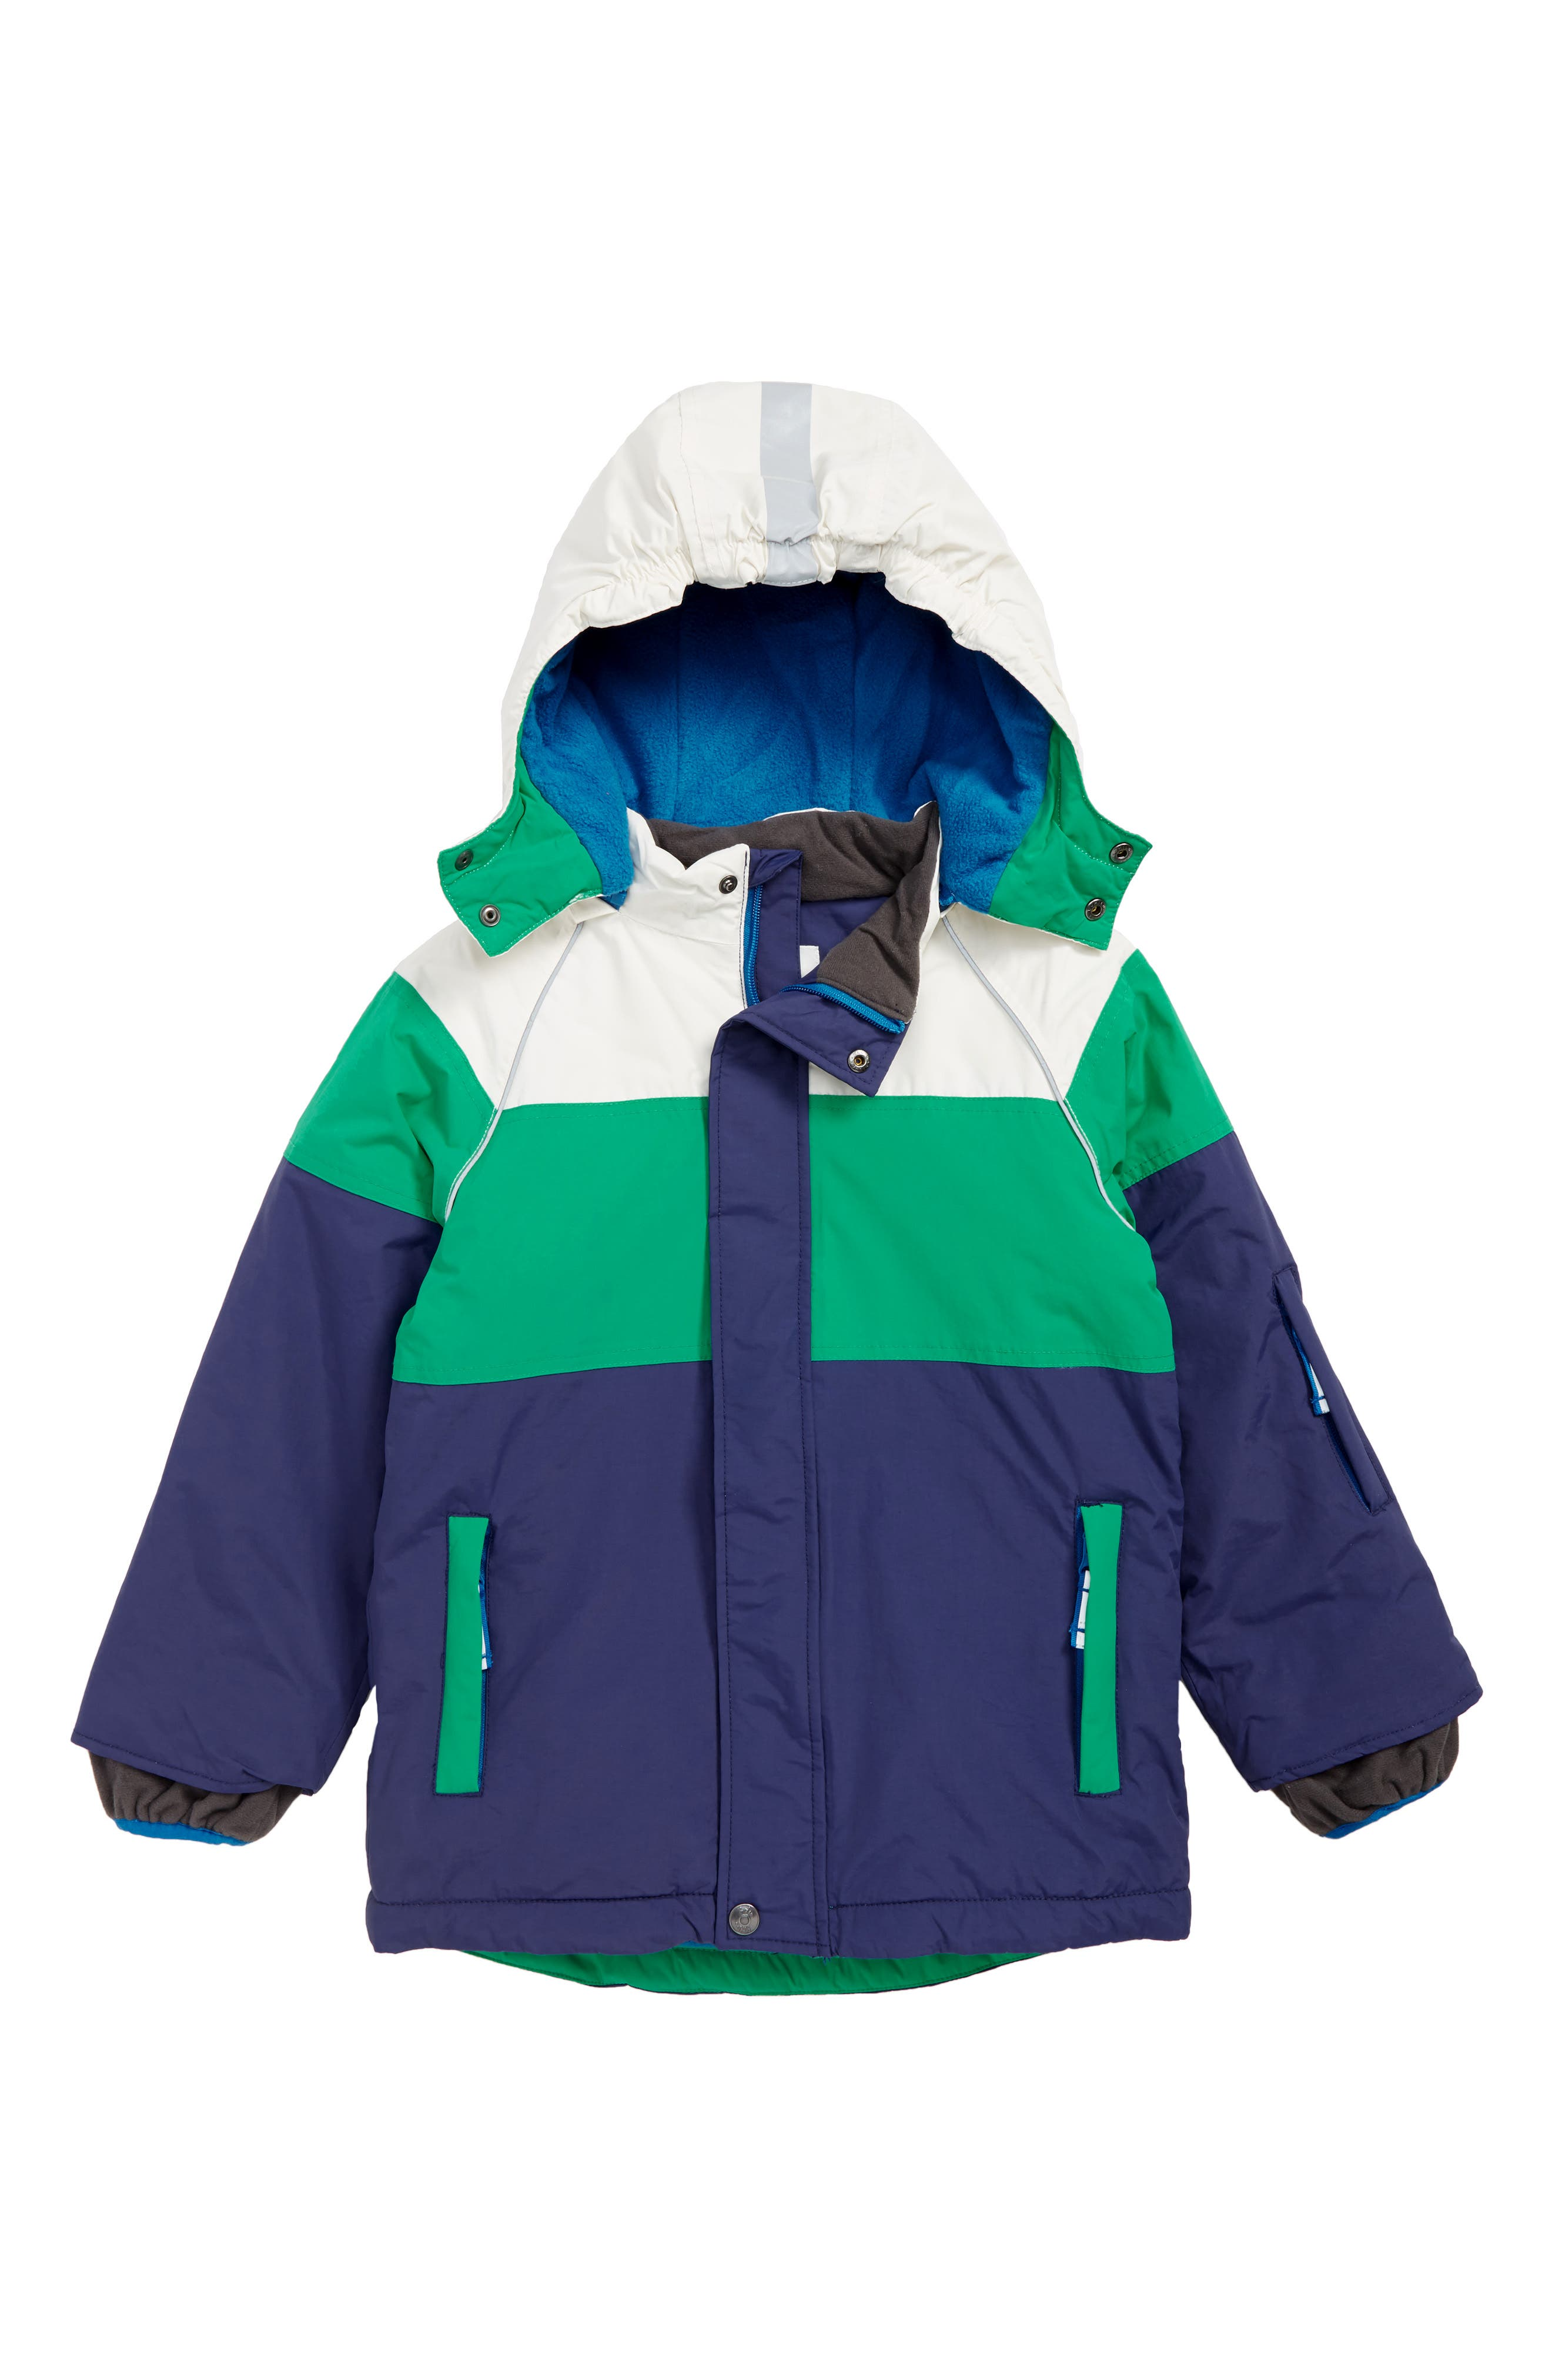 MINI BODEN, All Weather Waterproof Jacket, Main thumbnail 1, color, 424